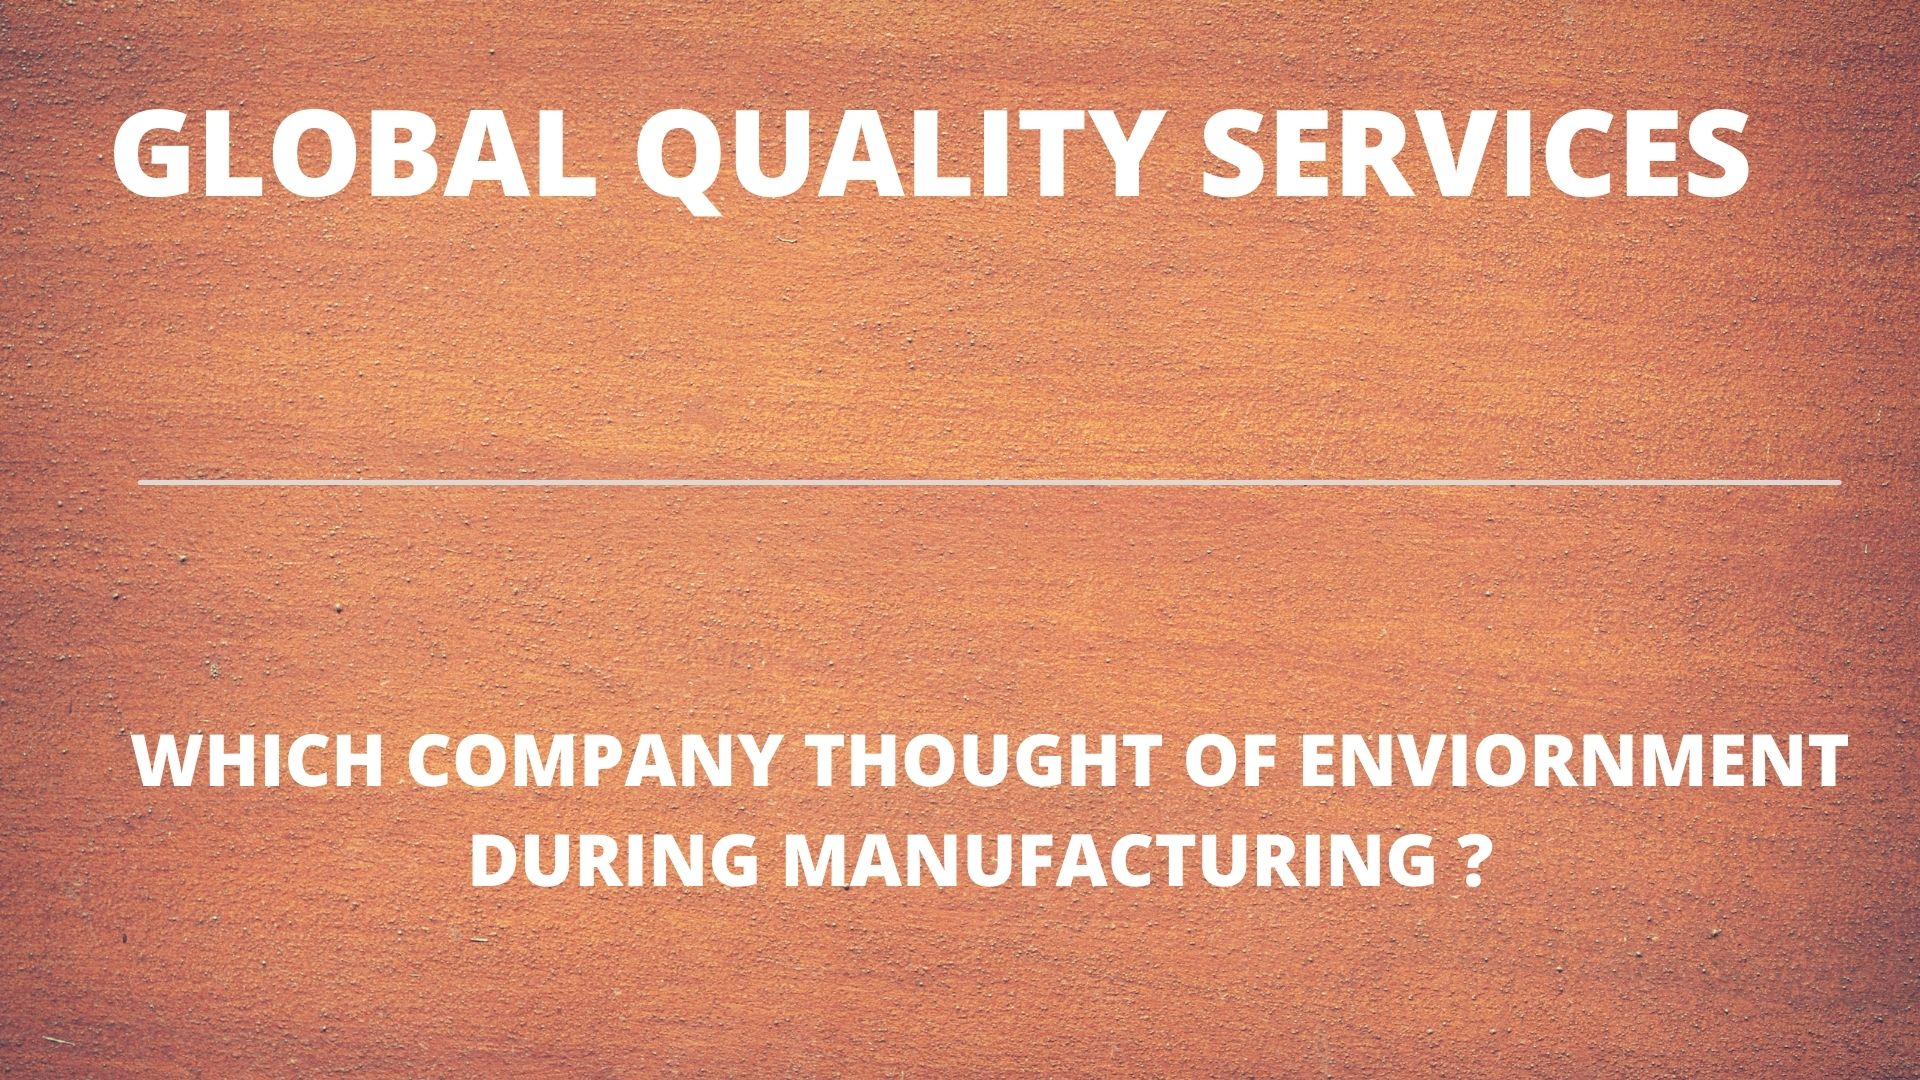 WHICH COMPANY THOUGHT OF ENVIORNMENT DURING MANUFACTURING_